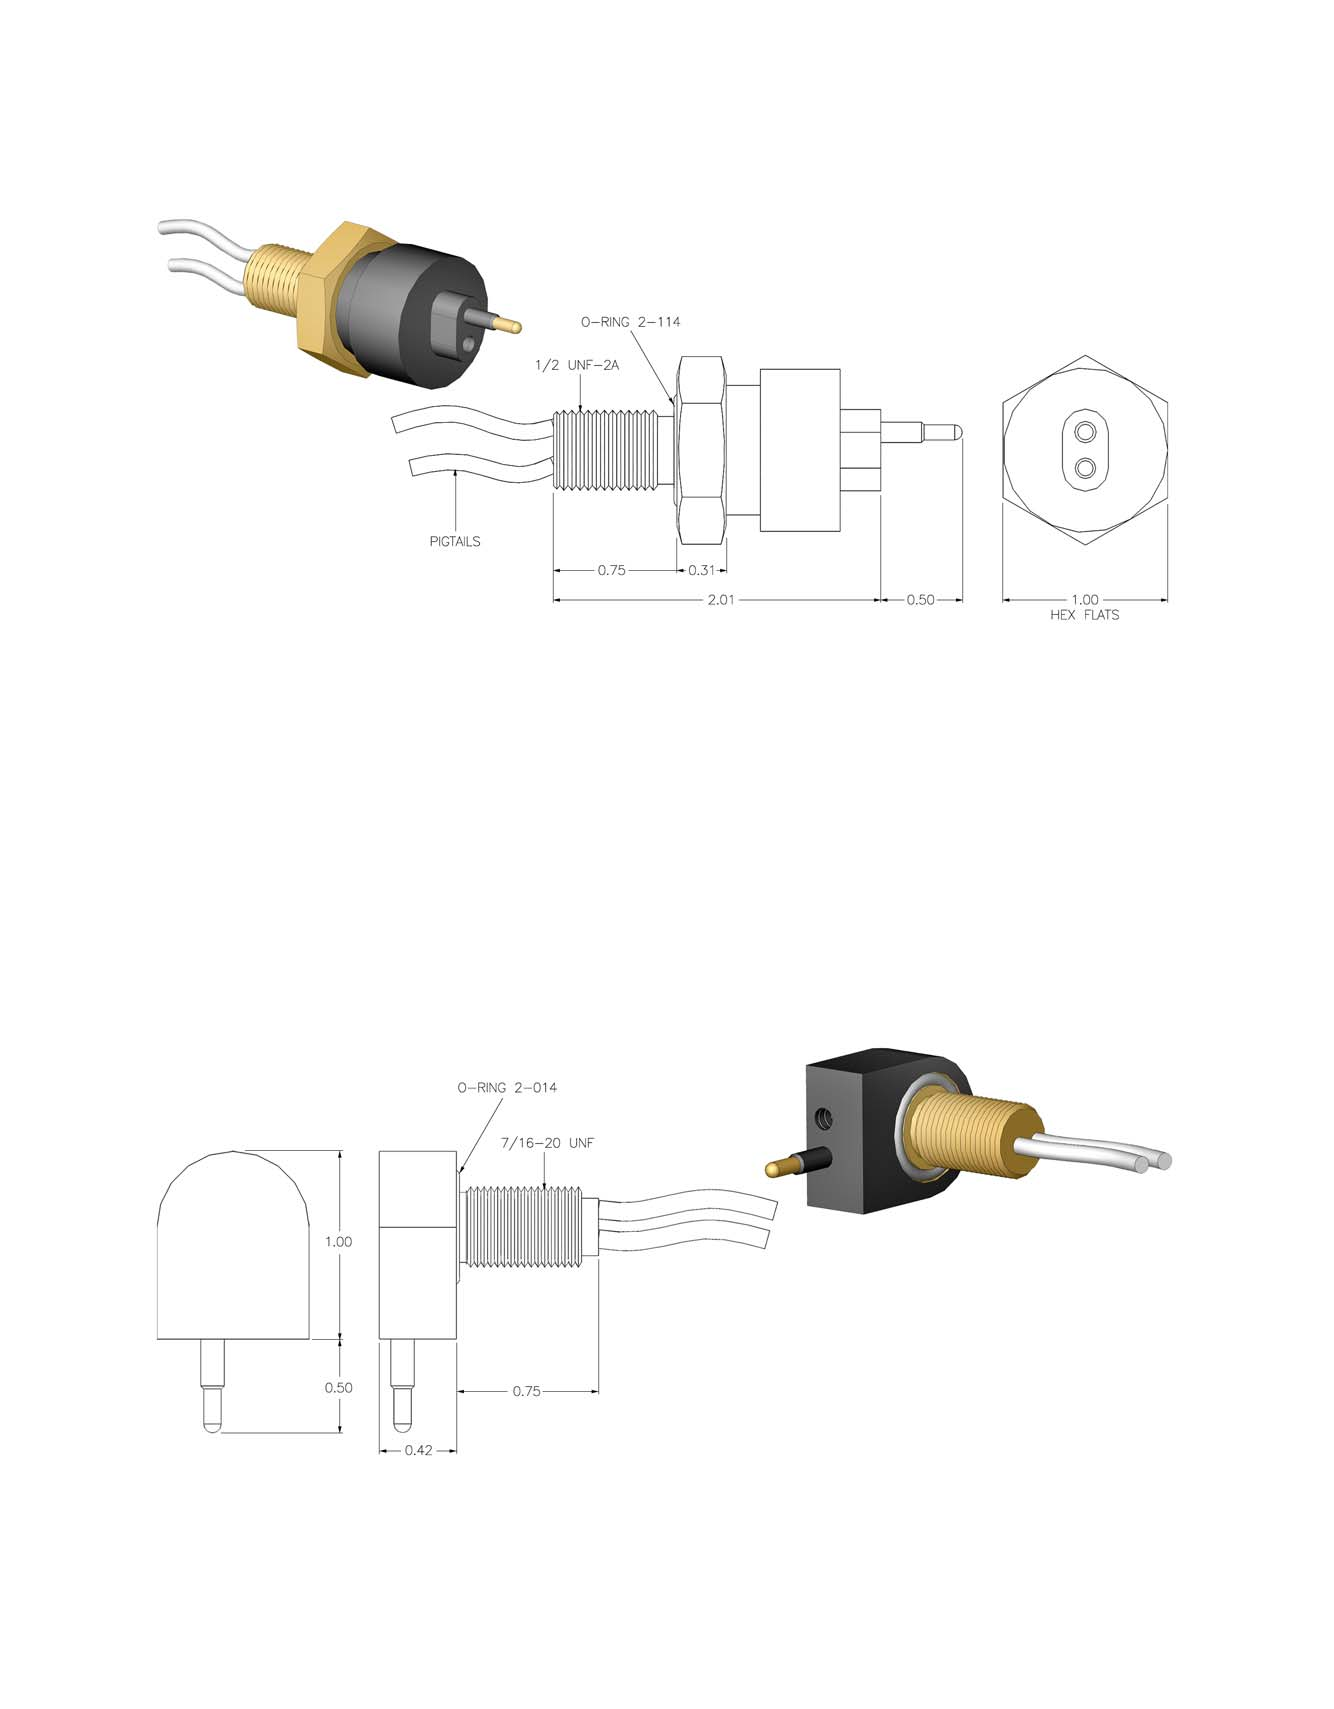 ^iijtbq HERMAPHRODITIC SERIES DIMENSION DETAILS MAW-2-HC-BC ^iijtbq Miniature Hermaphroditic Bulkhead Connector Mates with MAW-2-HC Dummy connector: Optional. Dummy Shorting Plug: Optional.